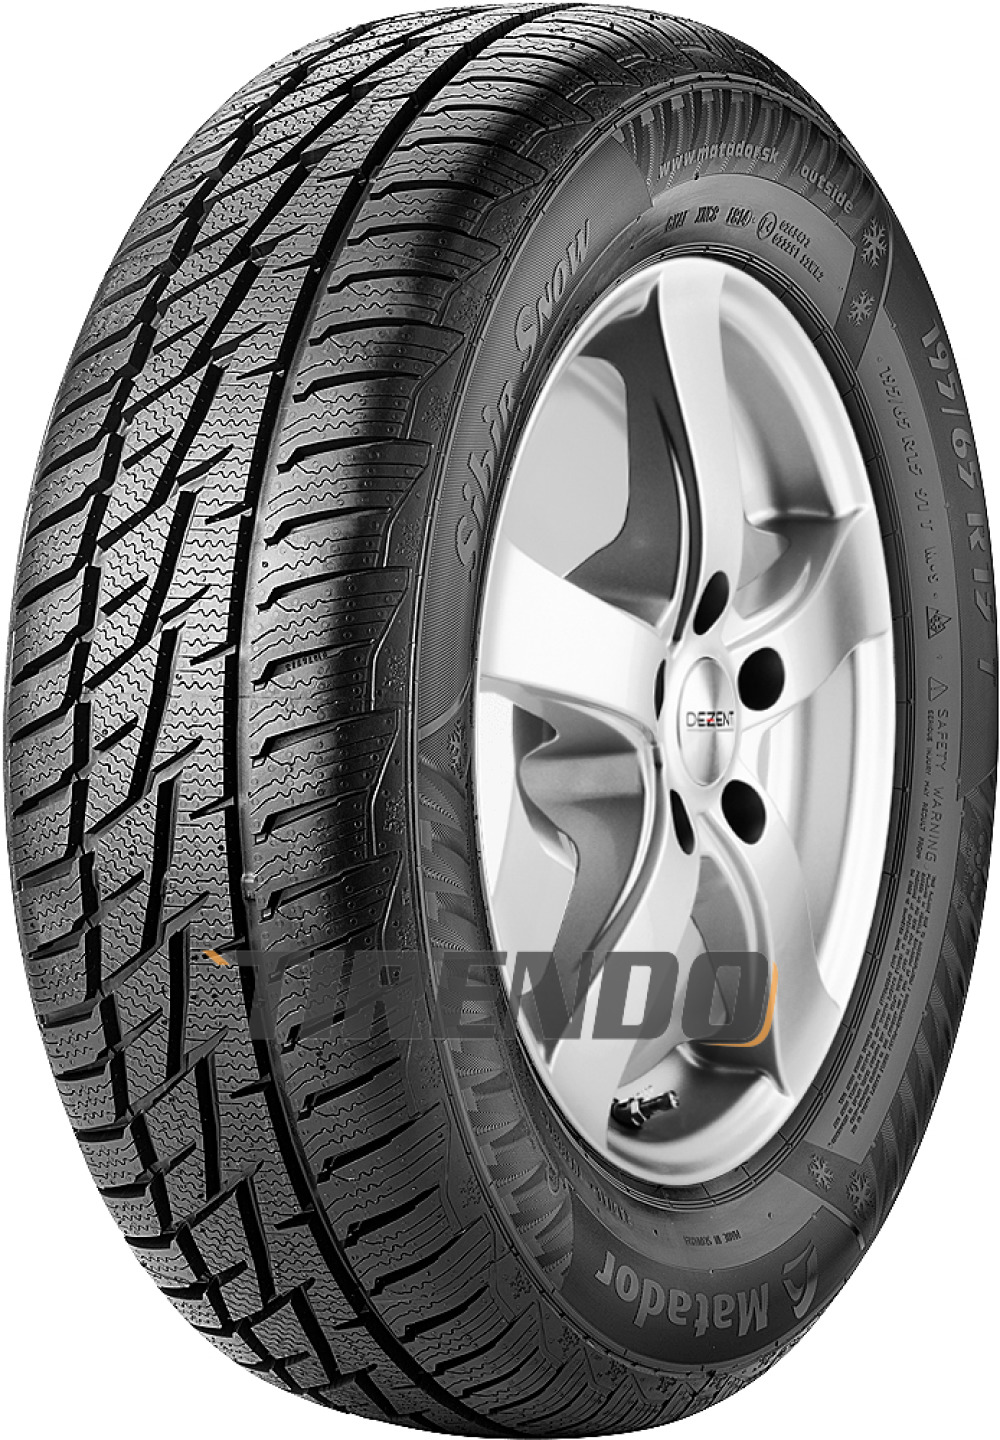 Image of 205/60R 1696H MP92SIBIR SNOW XL Winter/Winter by Continental